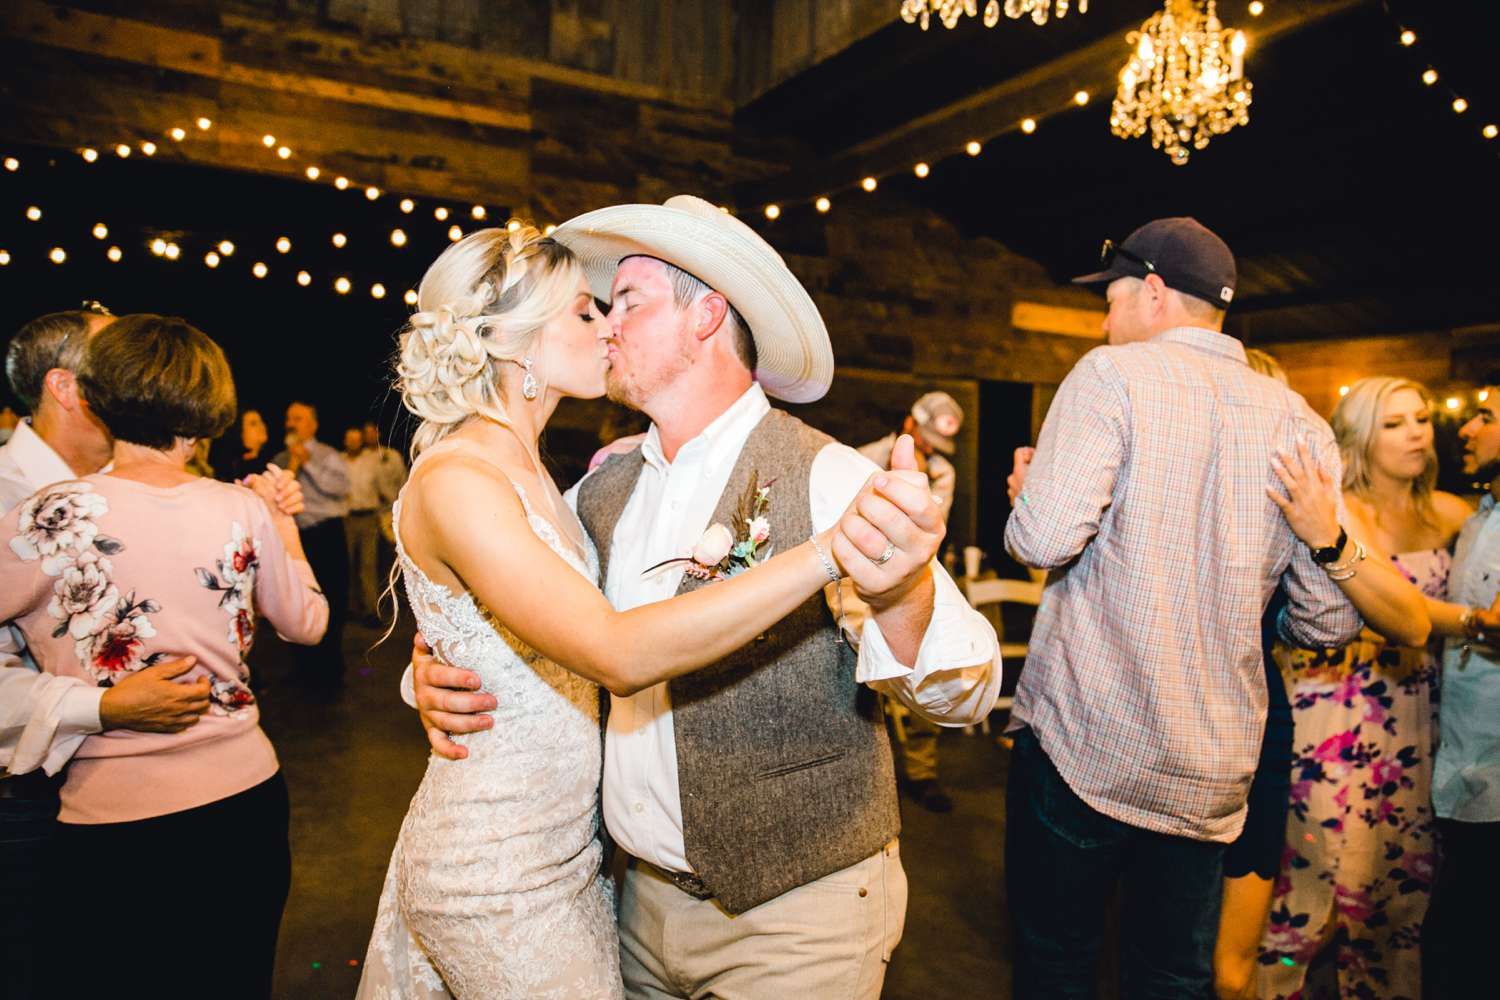 SARAH+TREVOR+BADGETT+SPARROW+CREEK+GRAHAM+TEXAS+ALLEEJ+WEDDINGS_0166.jpg